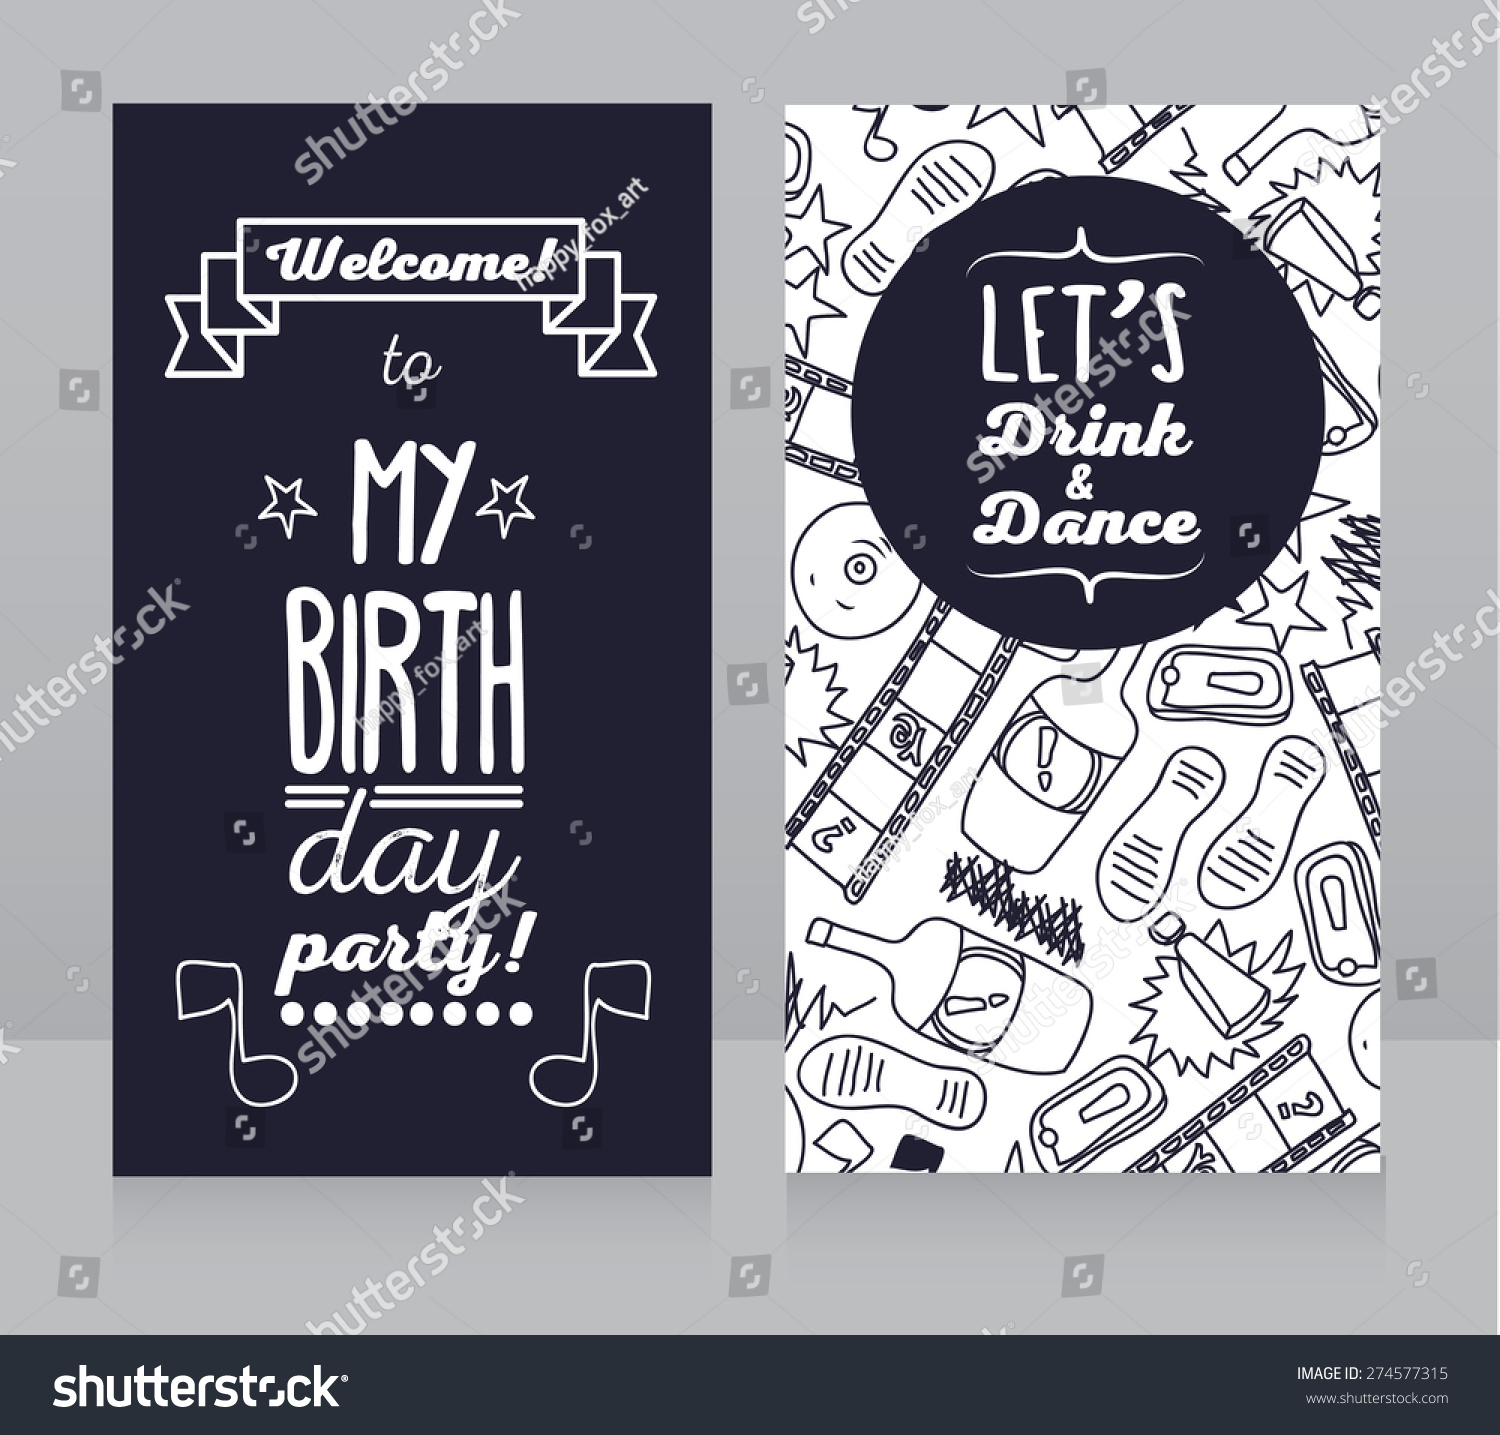 Birthday party invitation vector illustration stock vector birthday party invitation vector illustration stopboris Image collections